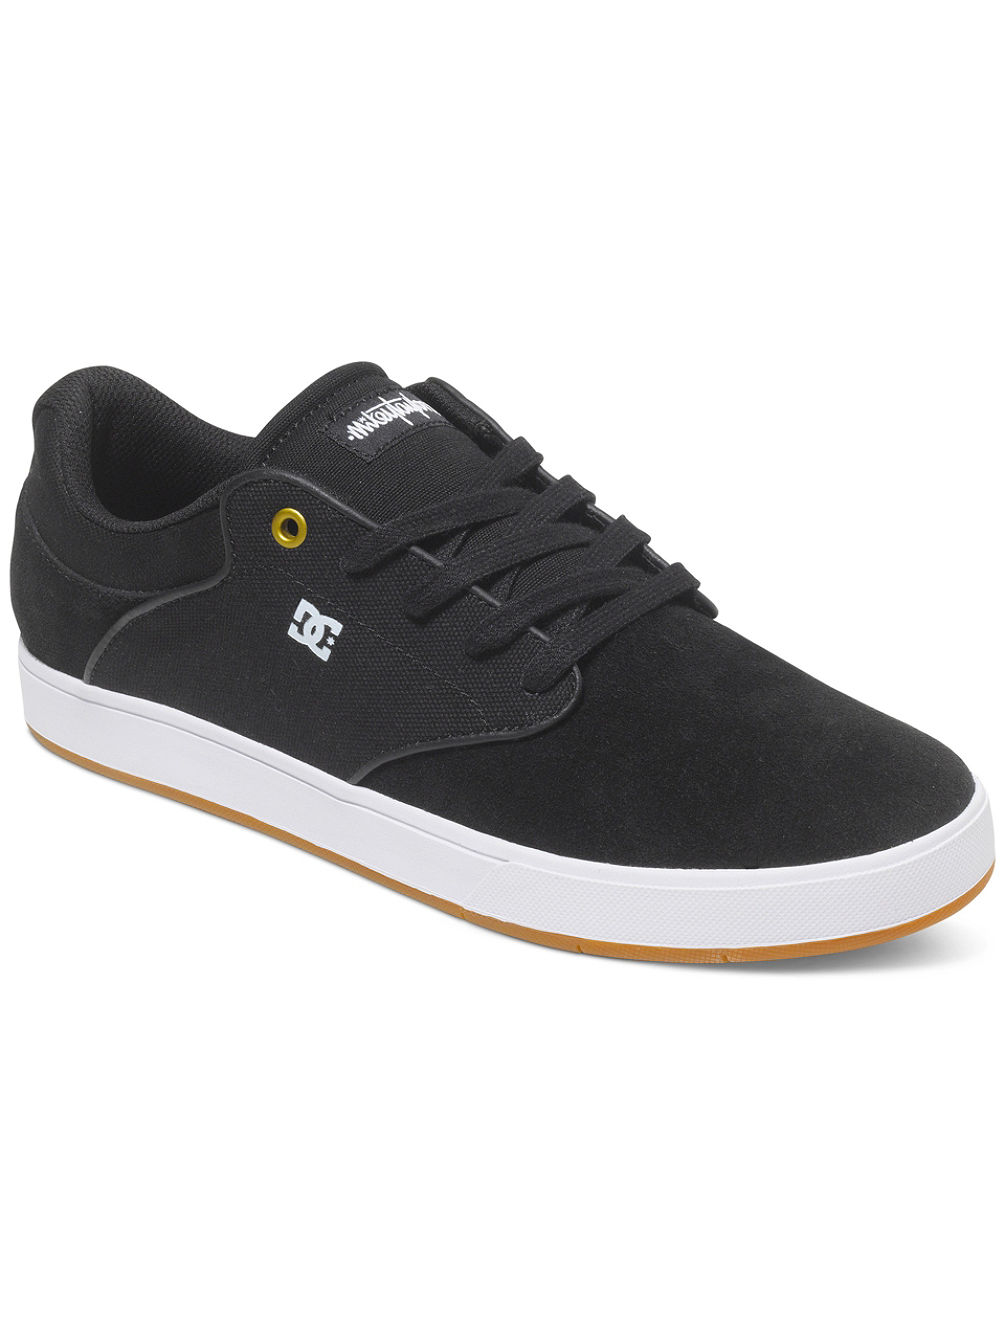 Mikey Taylor Skate Shoes